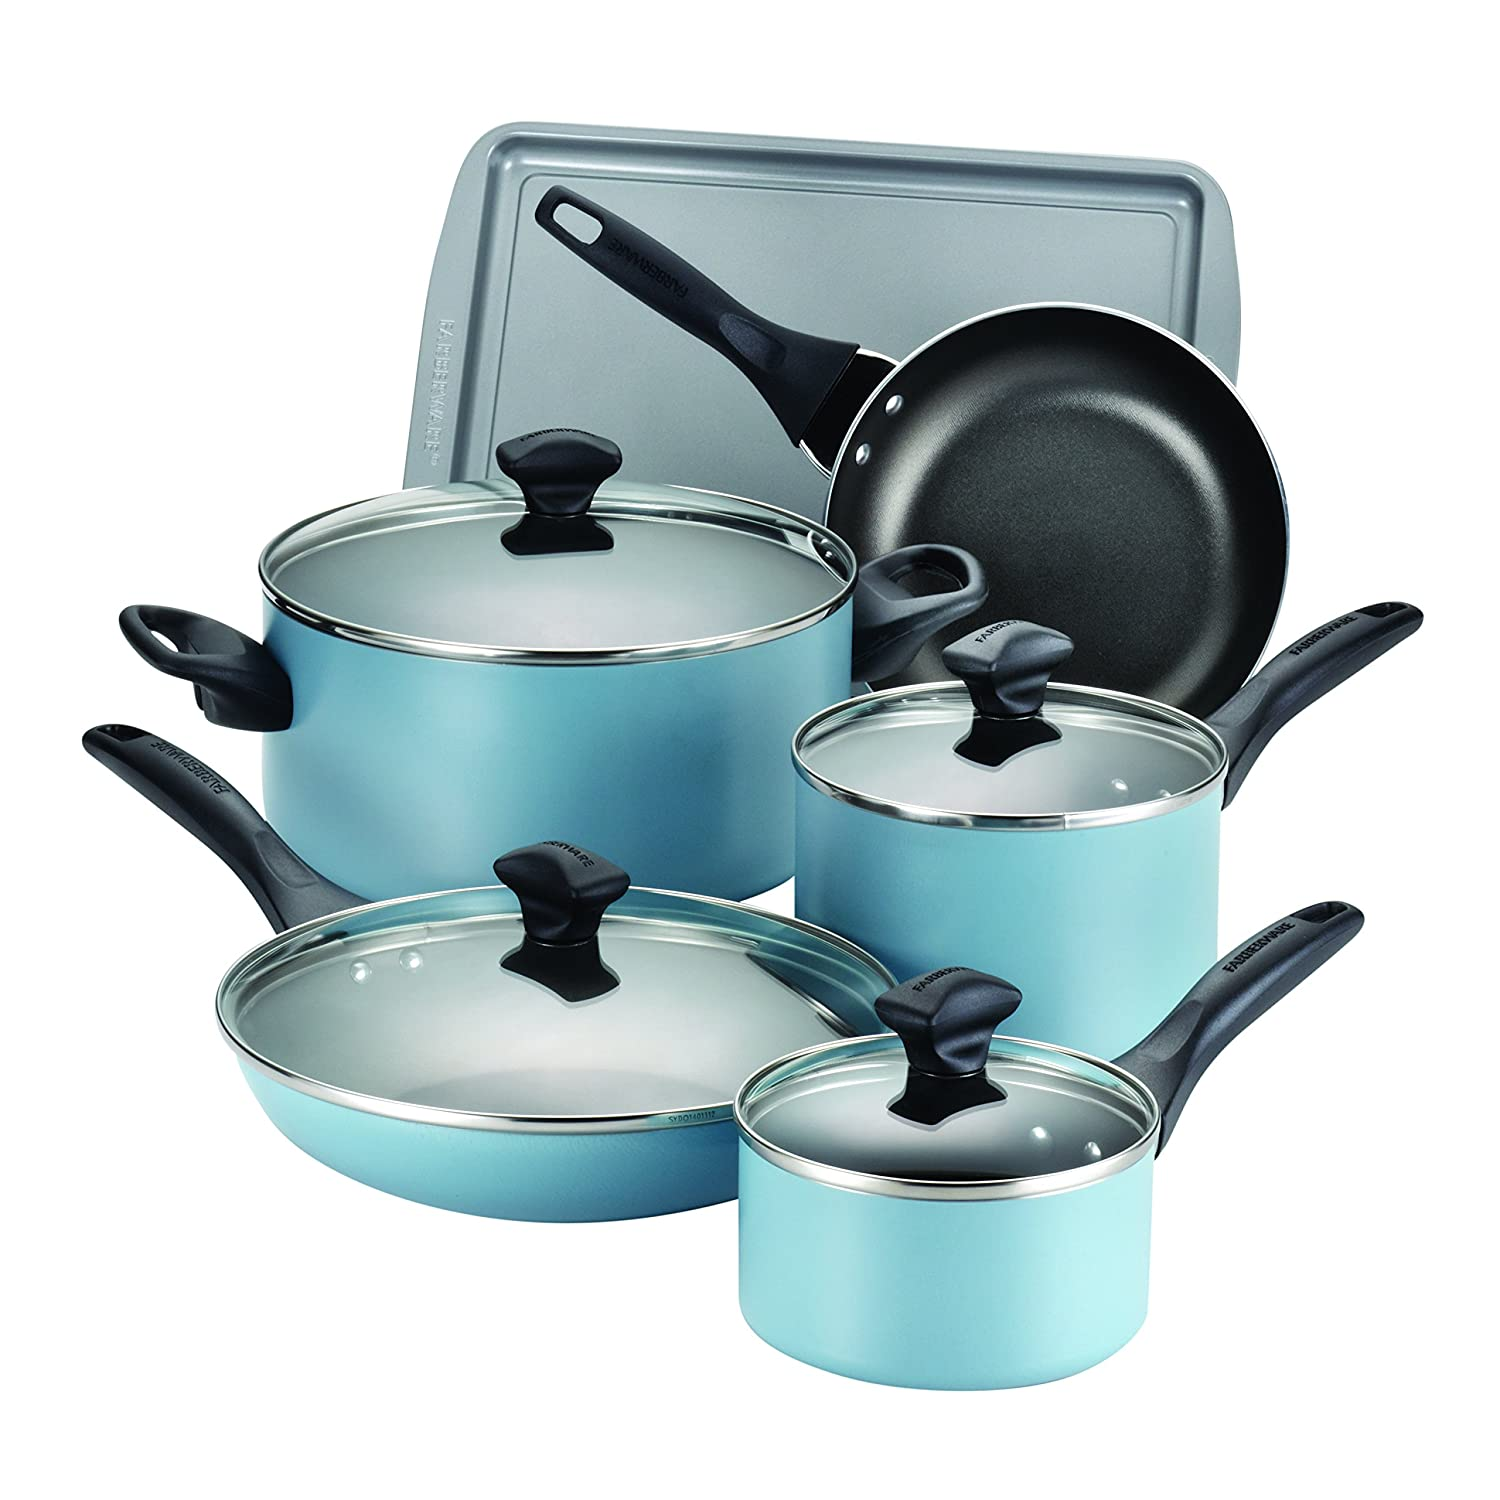 15 Piece Dishwasher Safe Nonstick Cookware Set Aqua ...